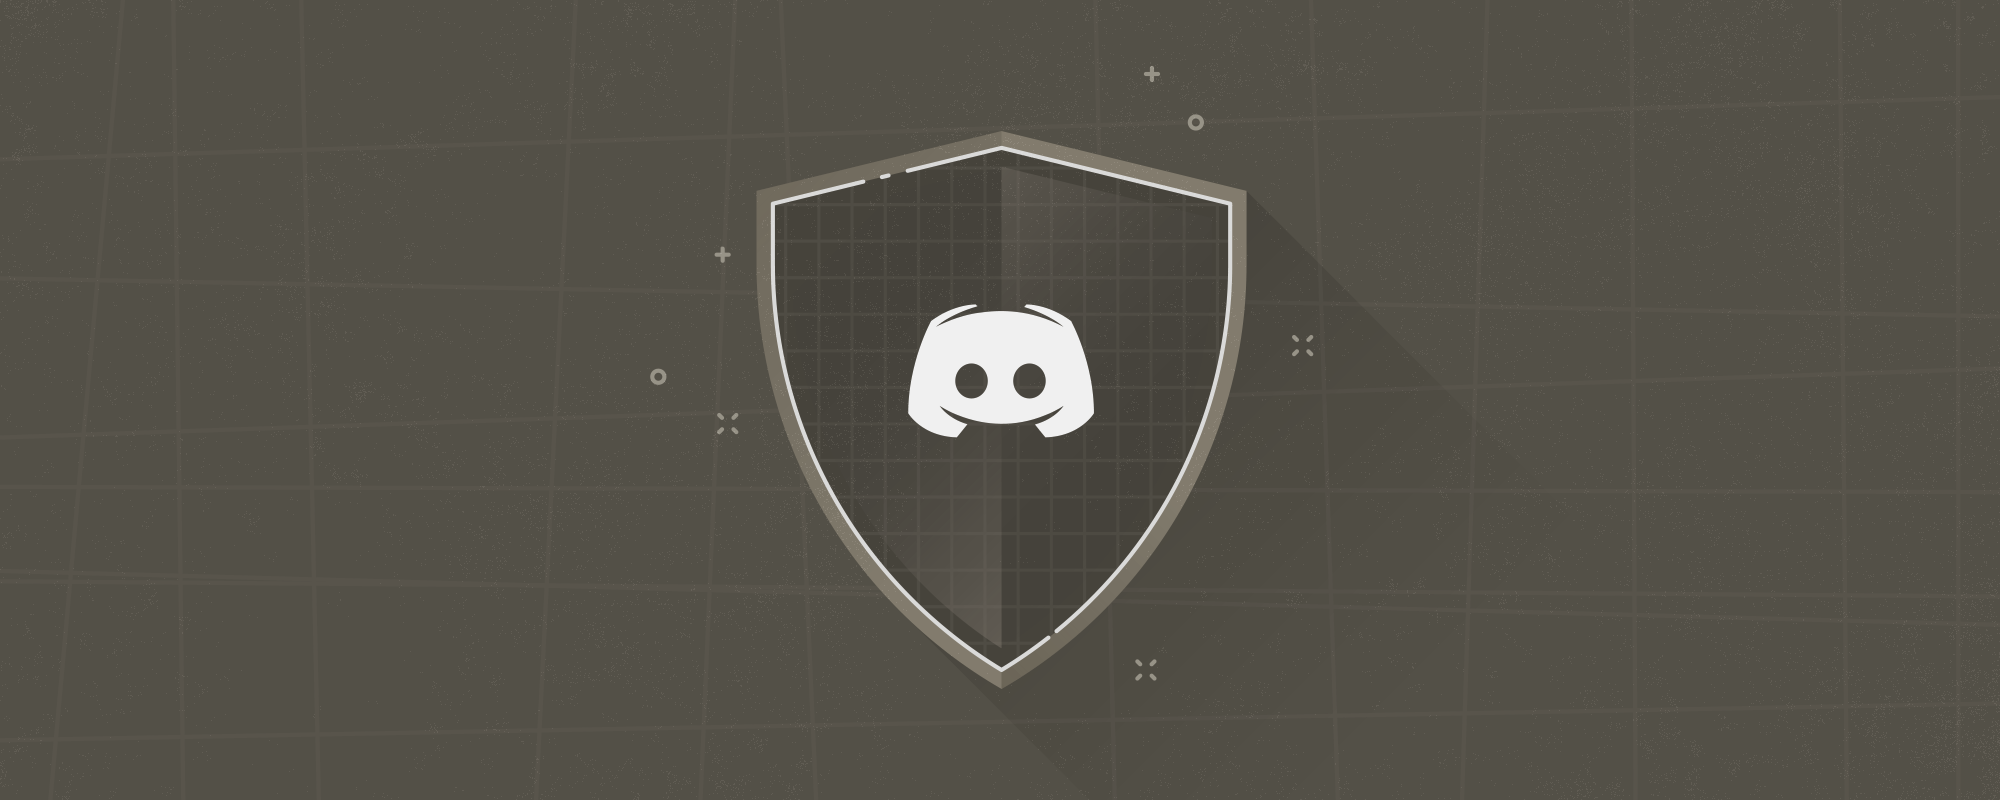 Maintaining Trust and Safety at Discord With Over 200